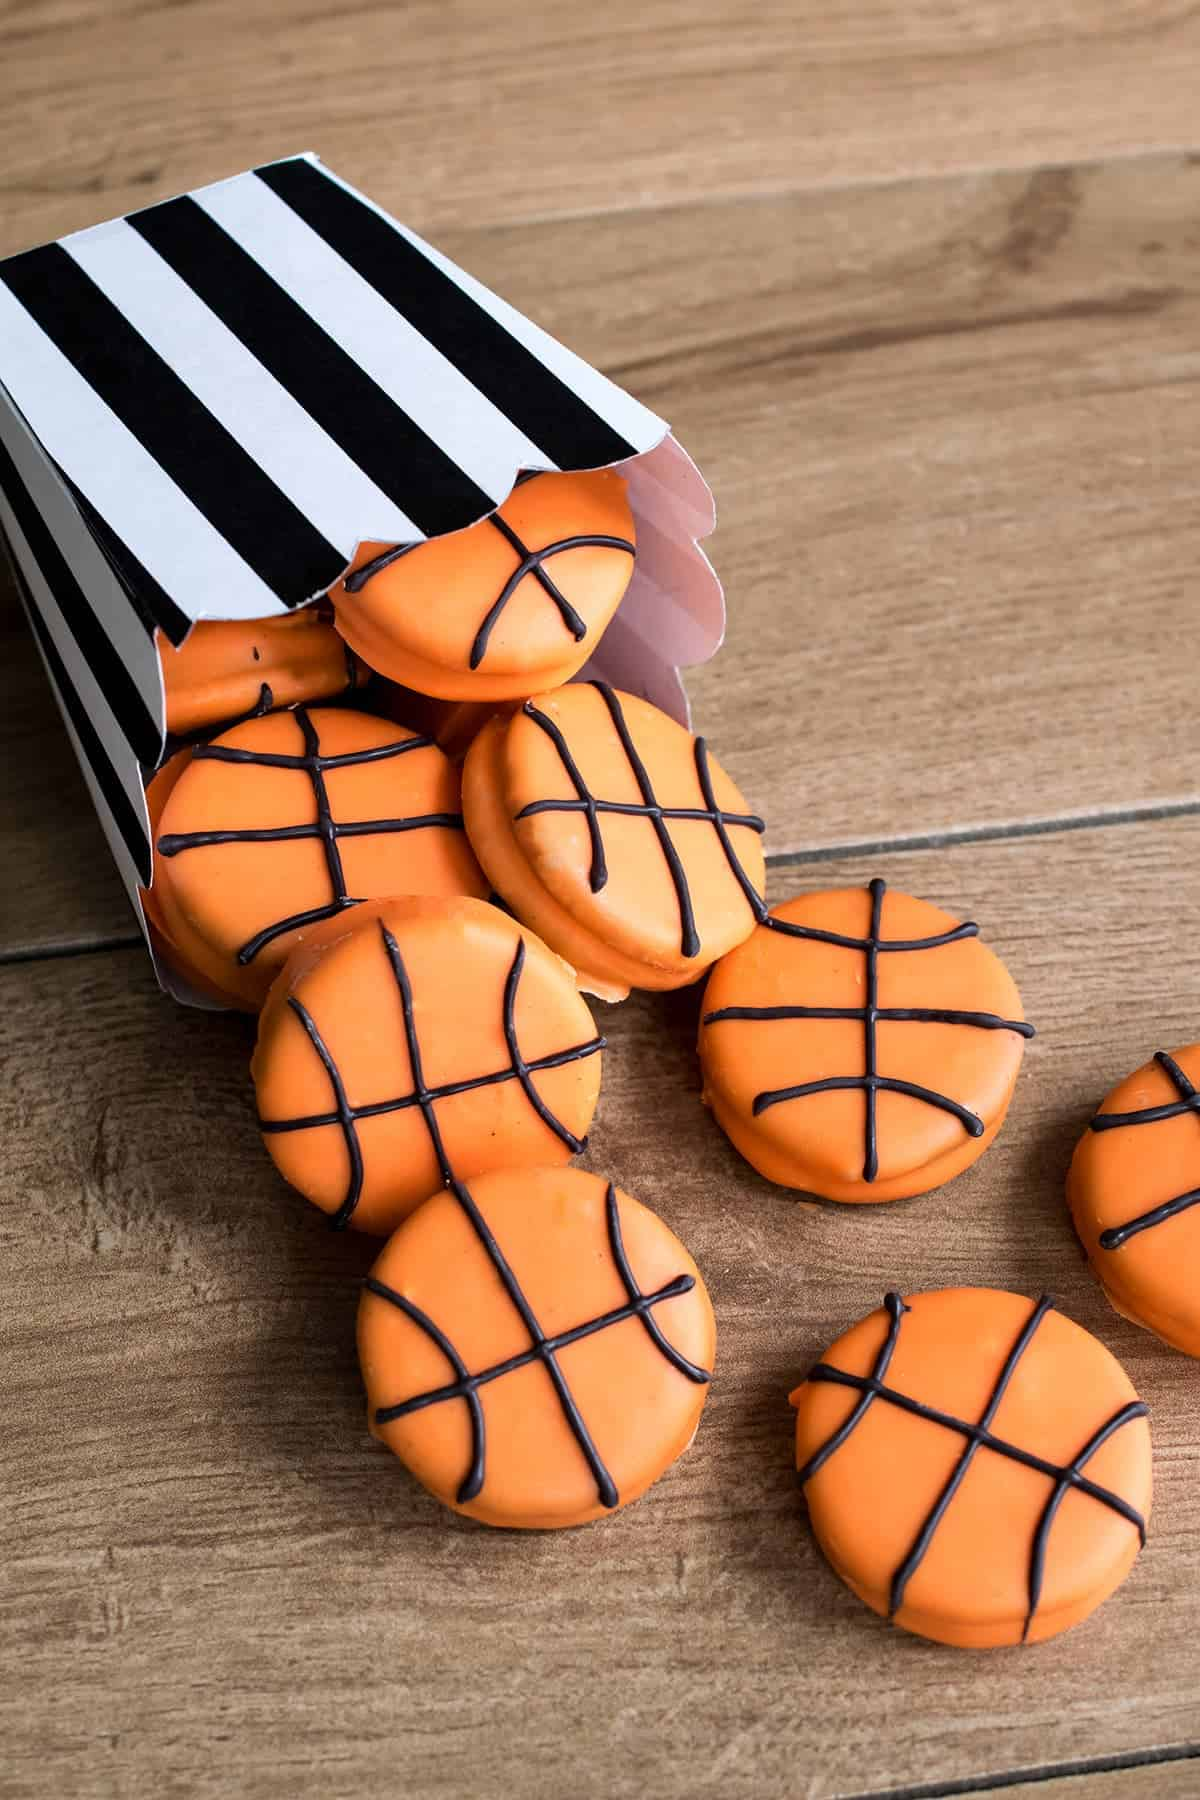 Chocolate Covered Oreos Basketballs - easy and complete instructions to decorate these fun cookies